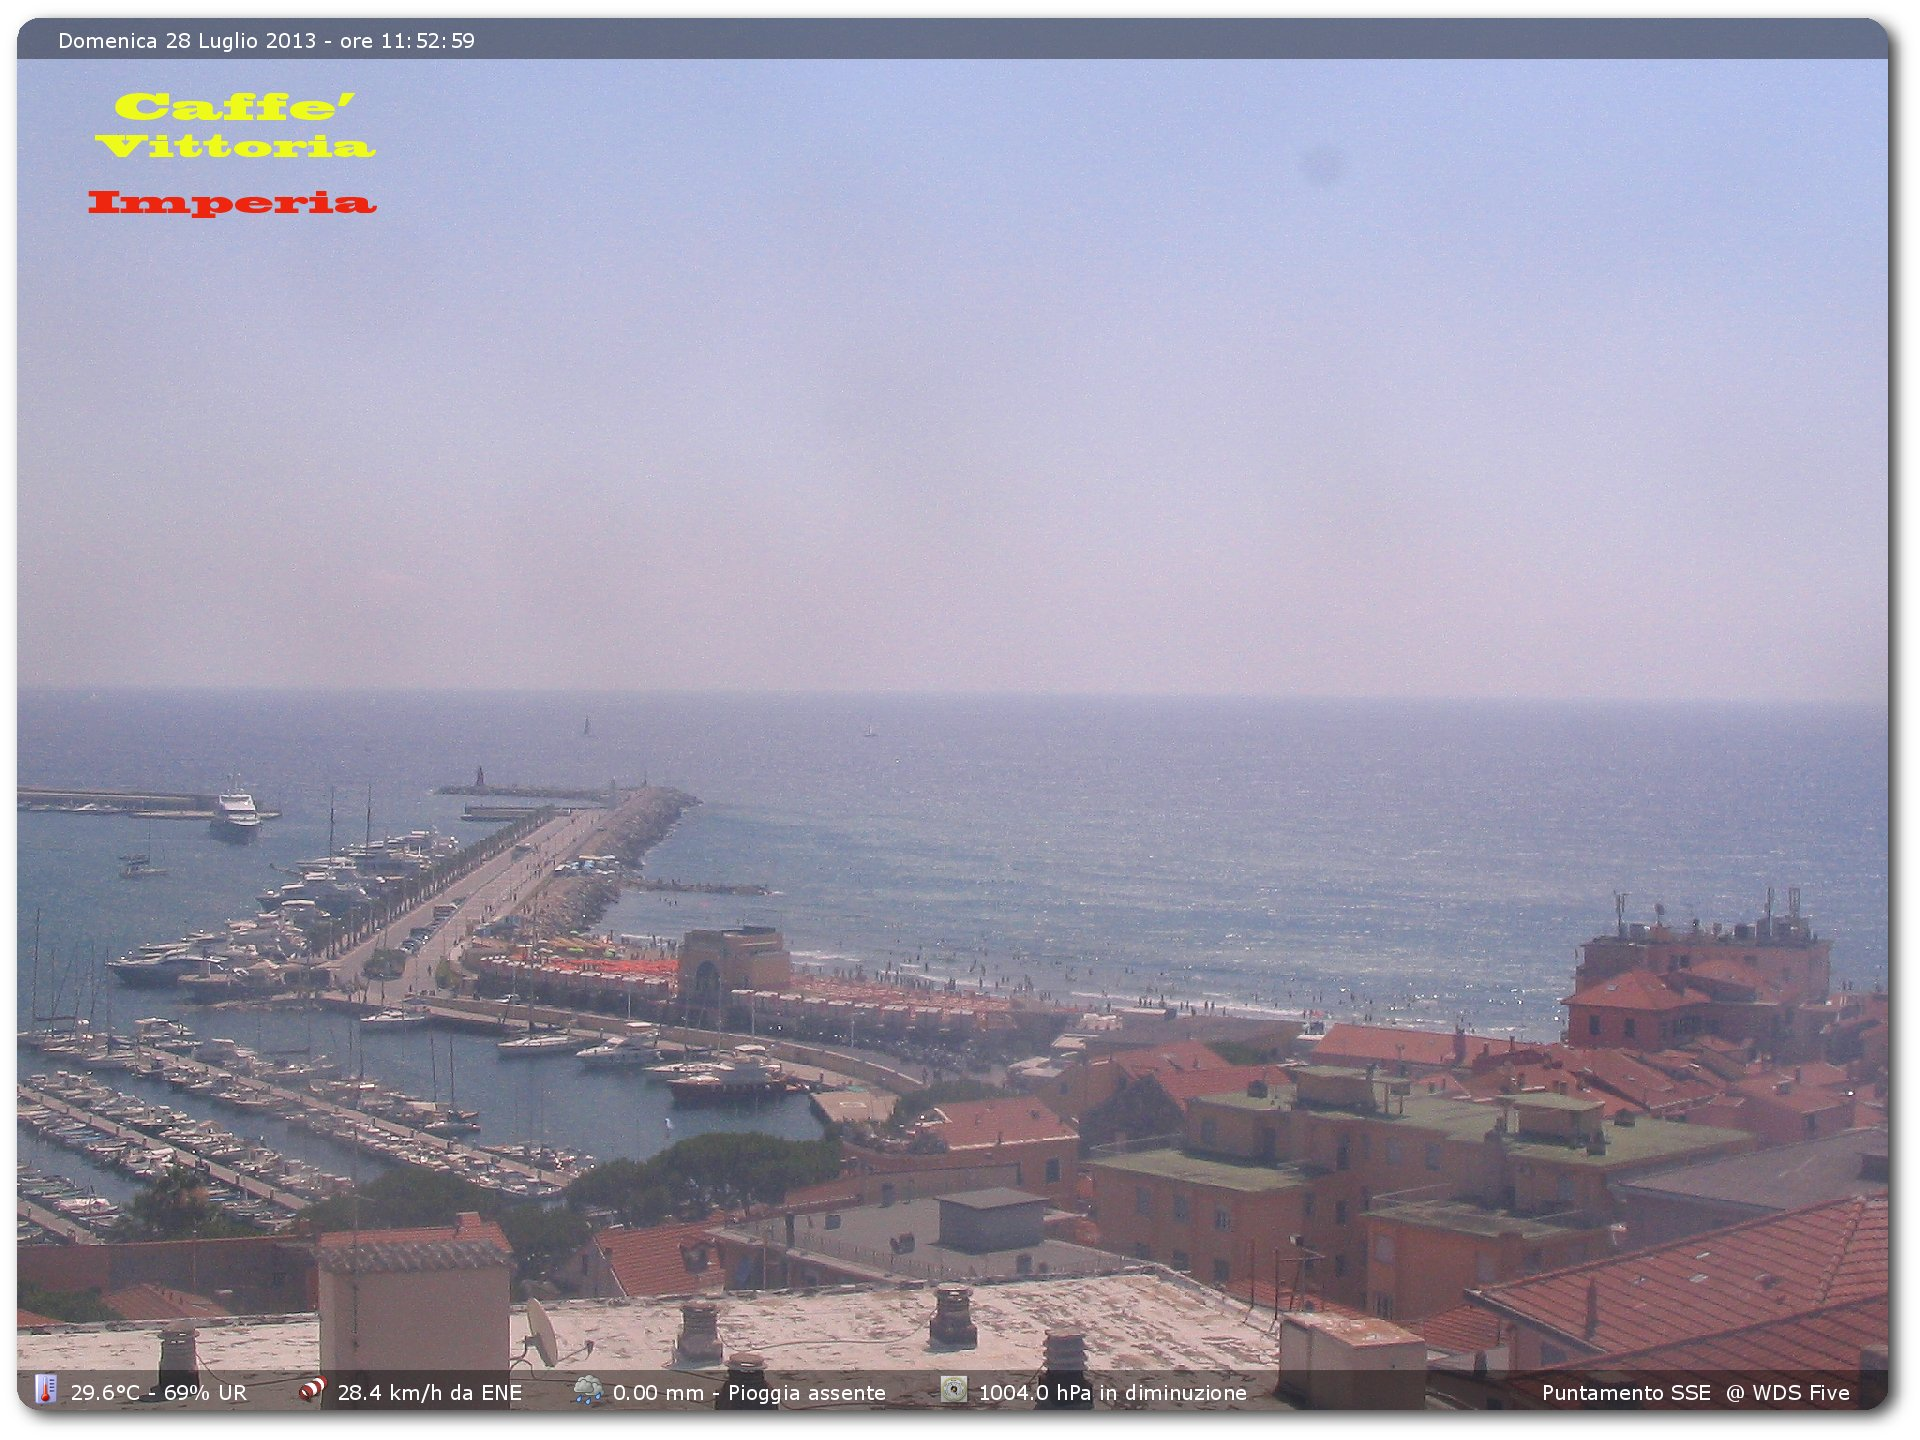 Imperia webcam - Caffe Vittoria Imperia webcam, Liguria, Imperia